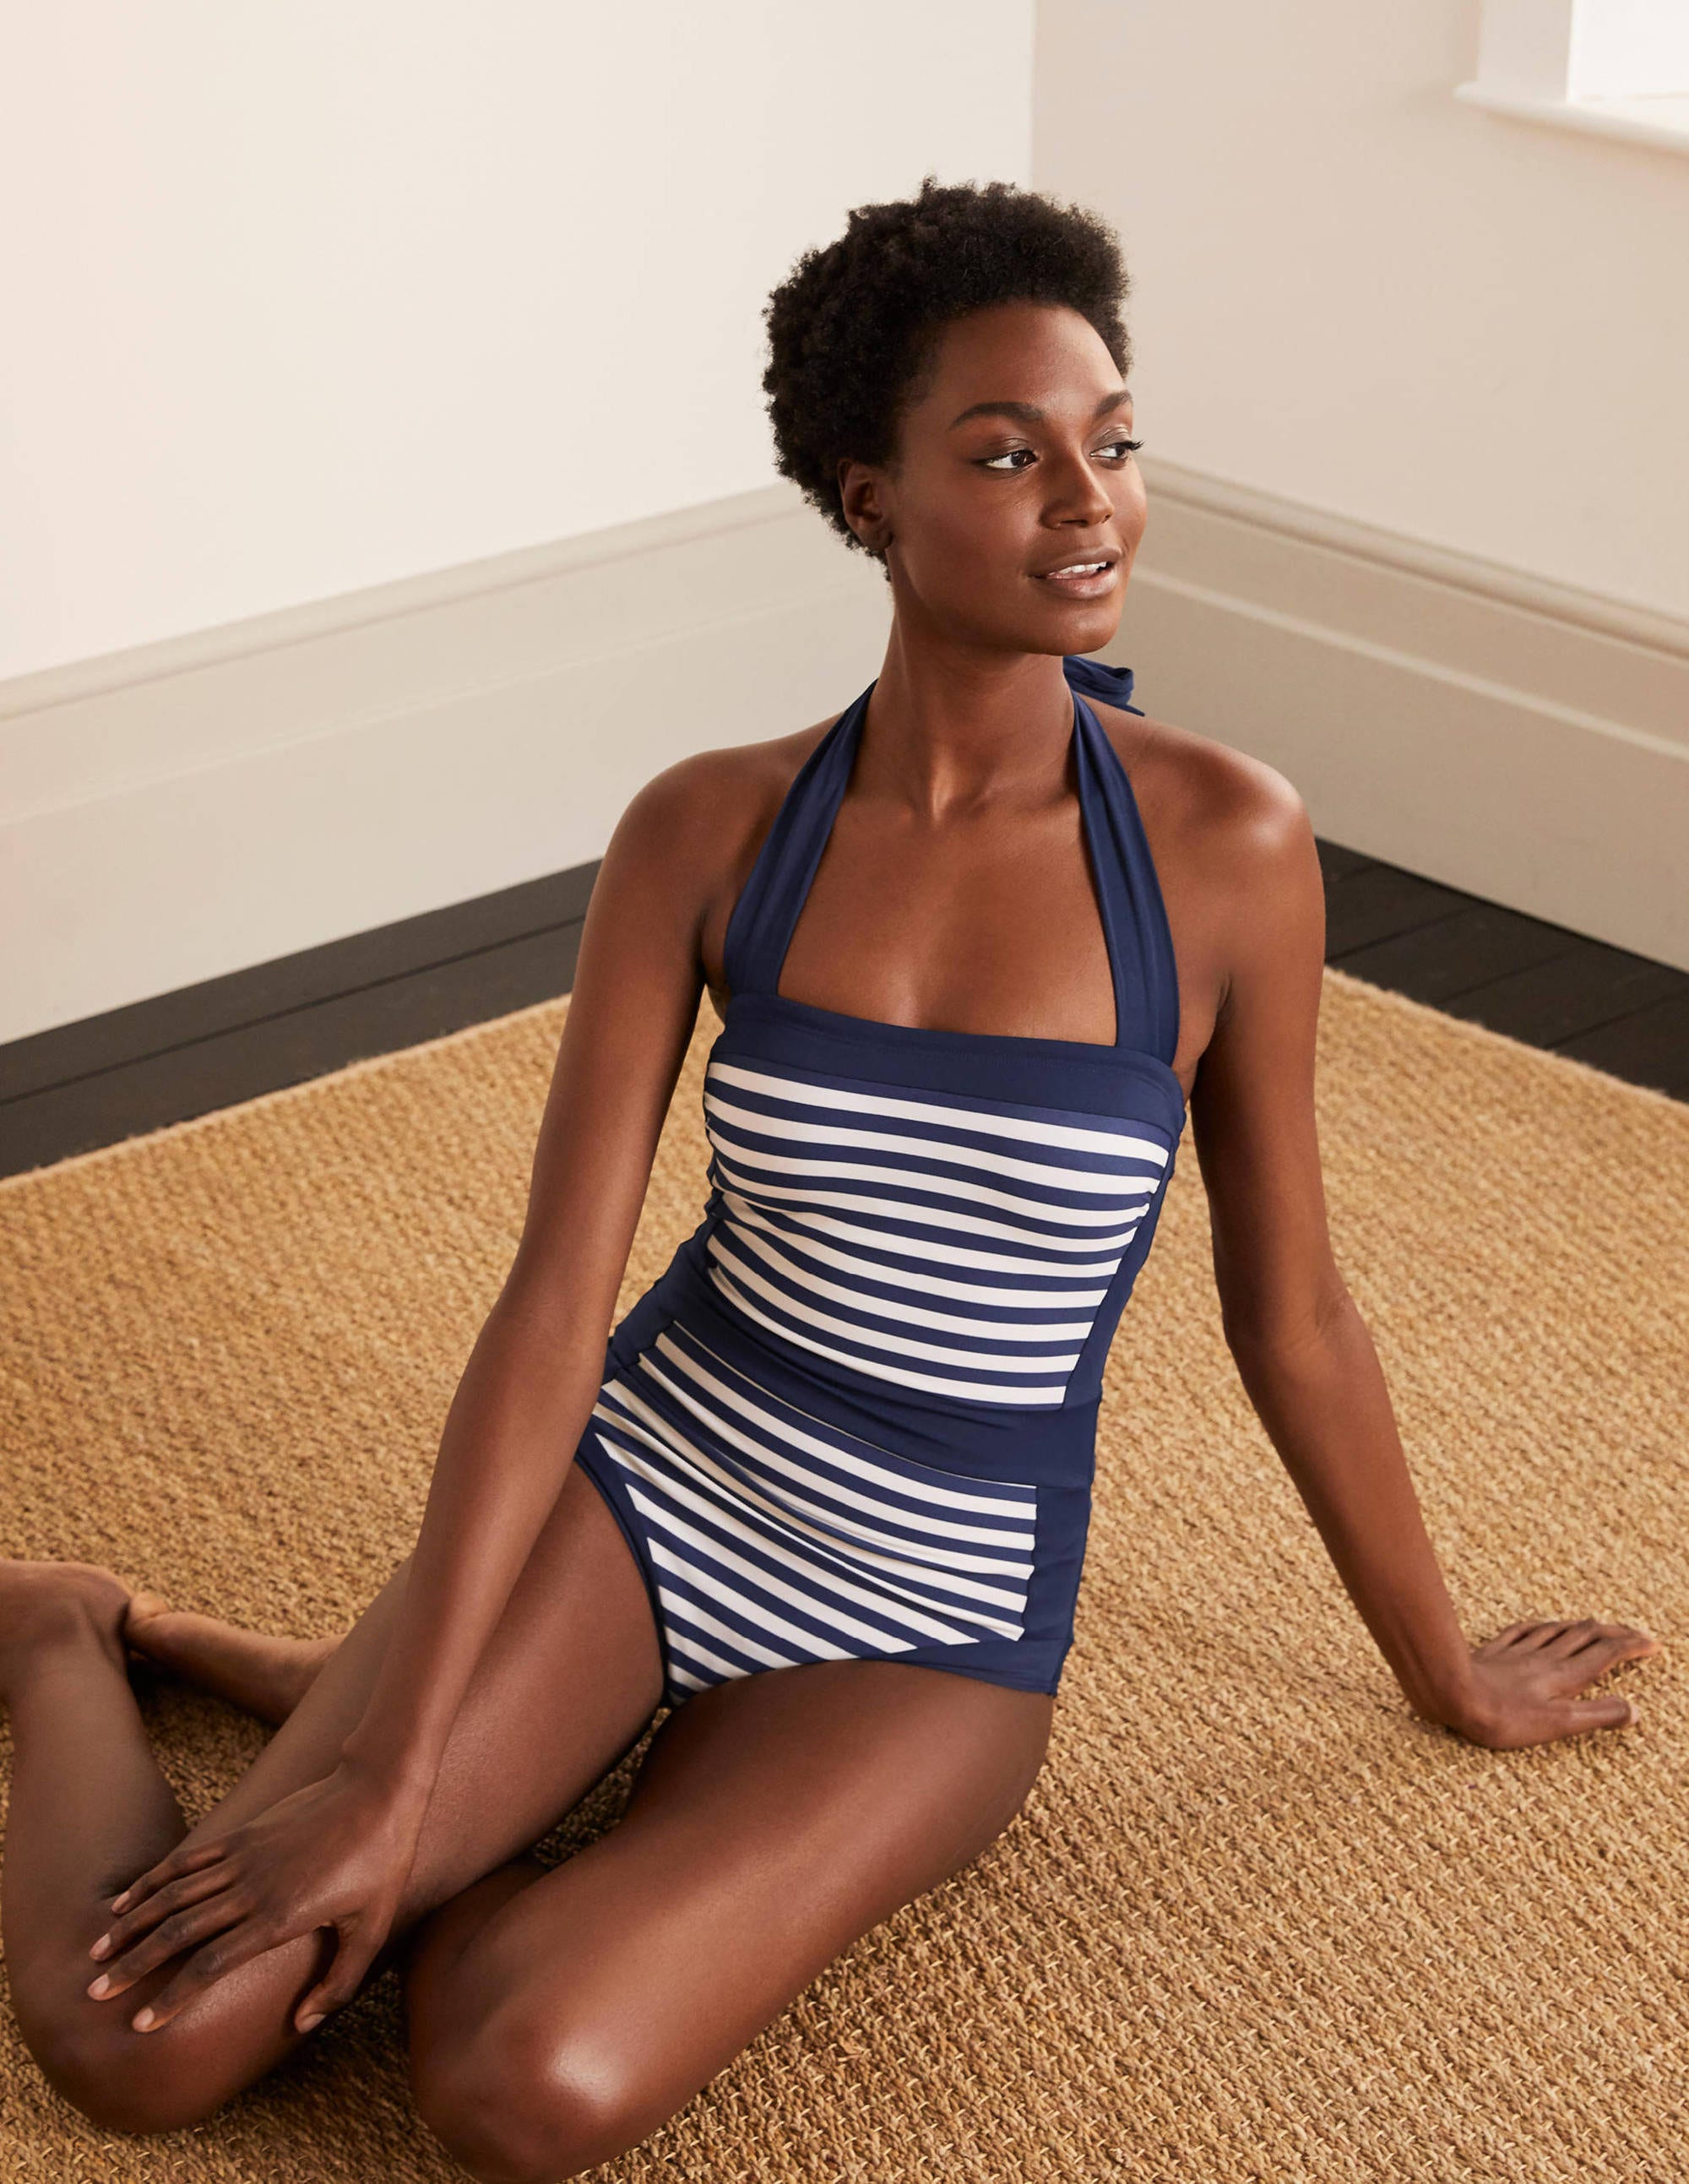 Boden Santorini Swimsuit - French Navy/Ivory Stripe